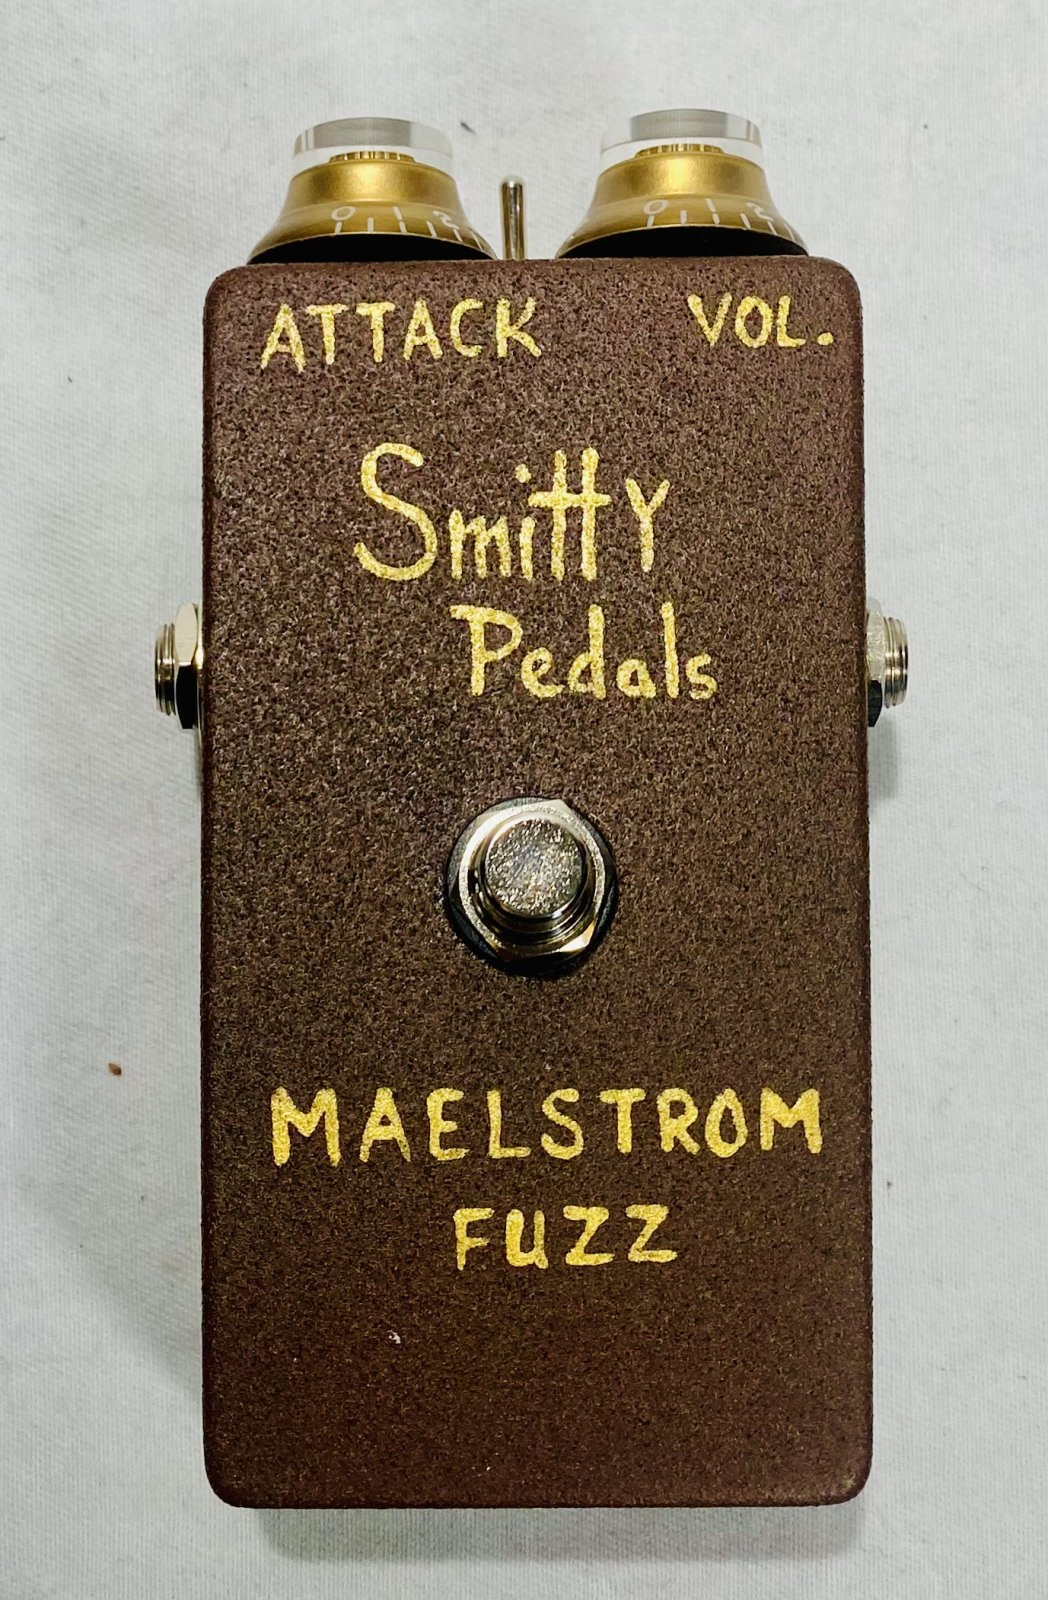 SMITTY PEDALS MAELSTROM FUZZ GUITAR PEDAL